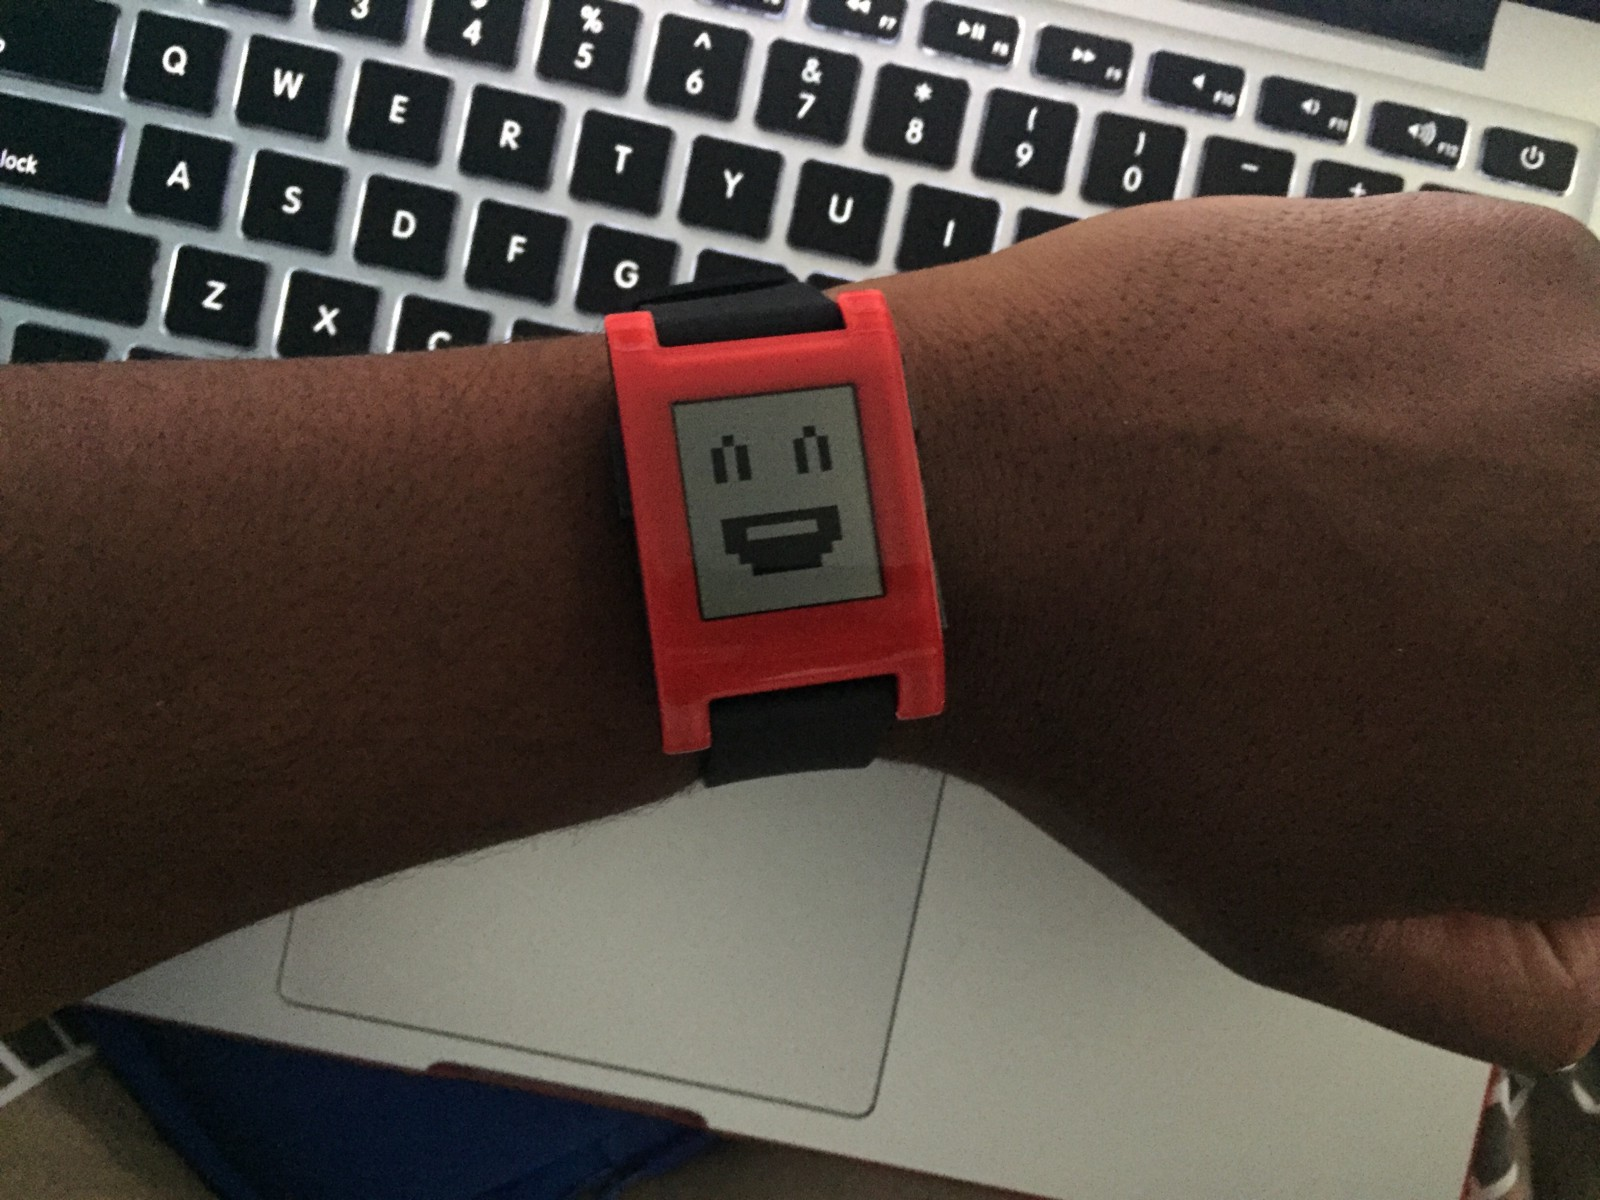 I Cancelled My Kickstarter Pledge For The Pebble Time Last Weekand Smartwatch Red So In An Impulsive Motion Purchased Original From Best Buy Which Was On Sale 89 Just To See How Much A Would Impact Life